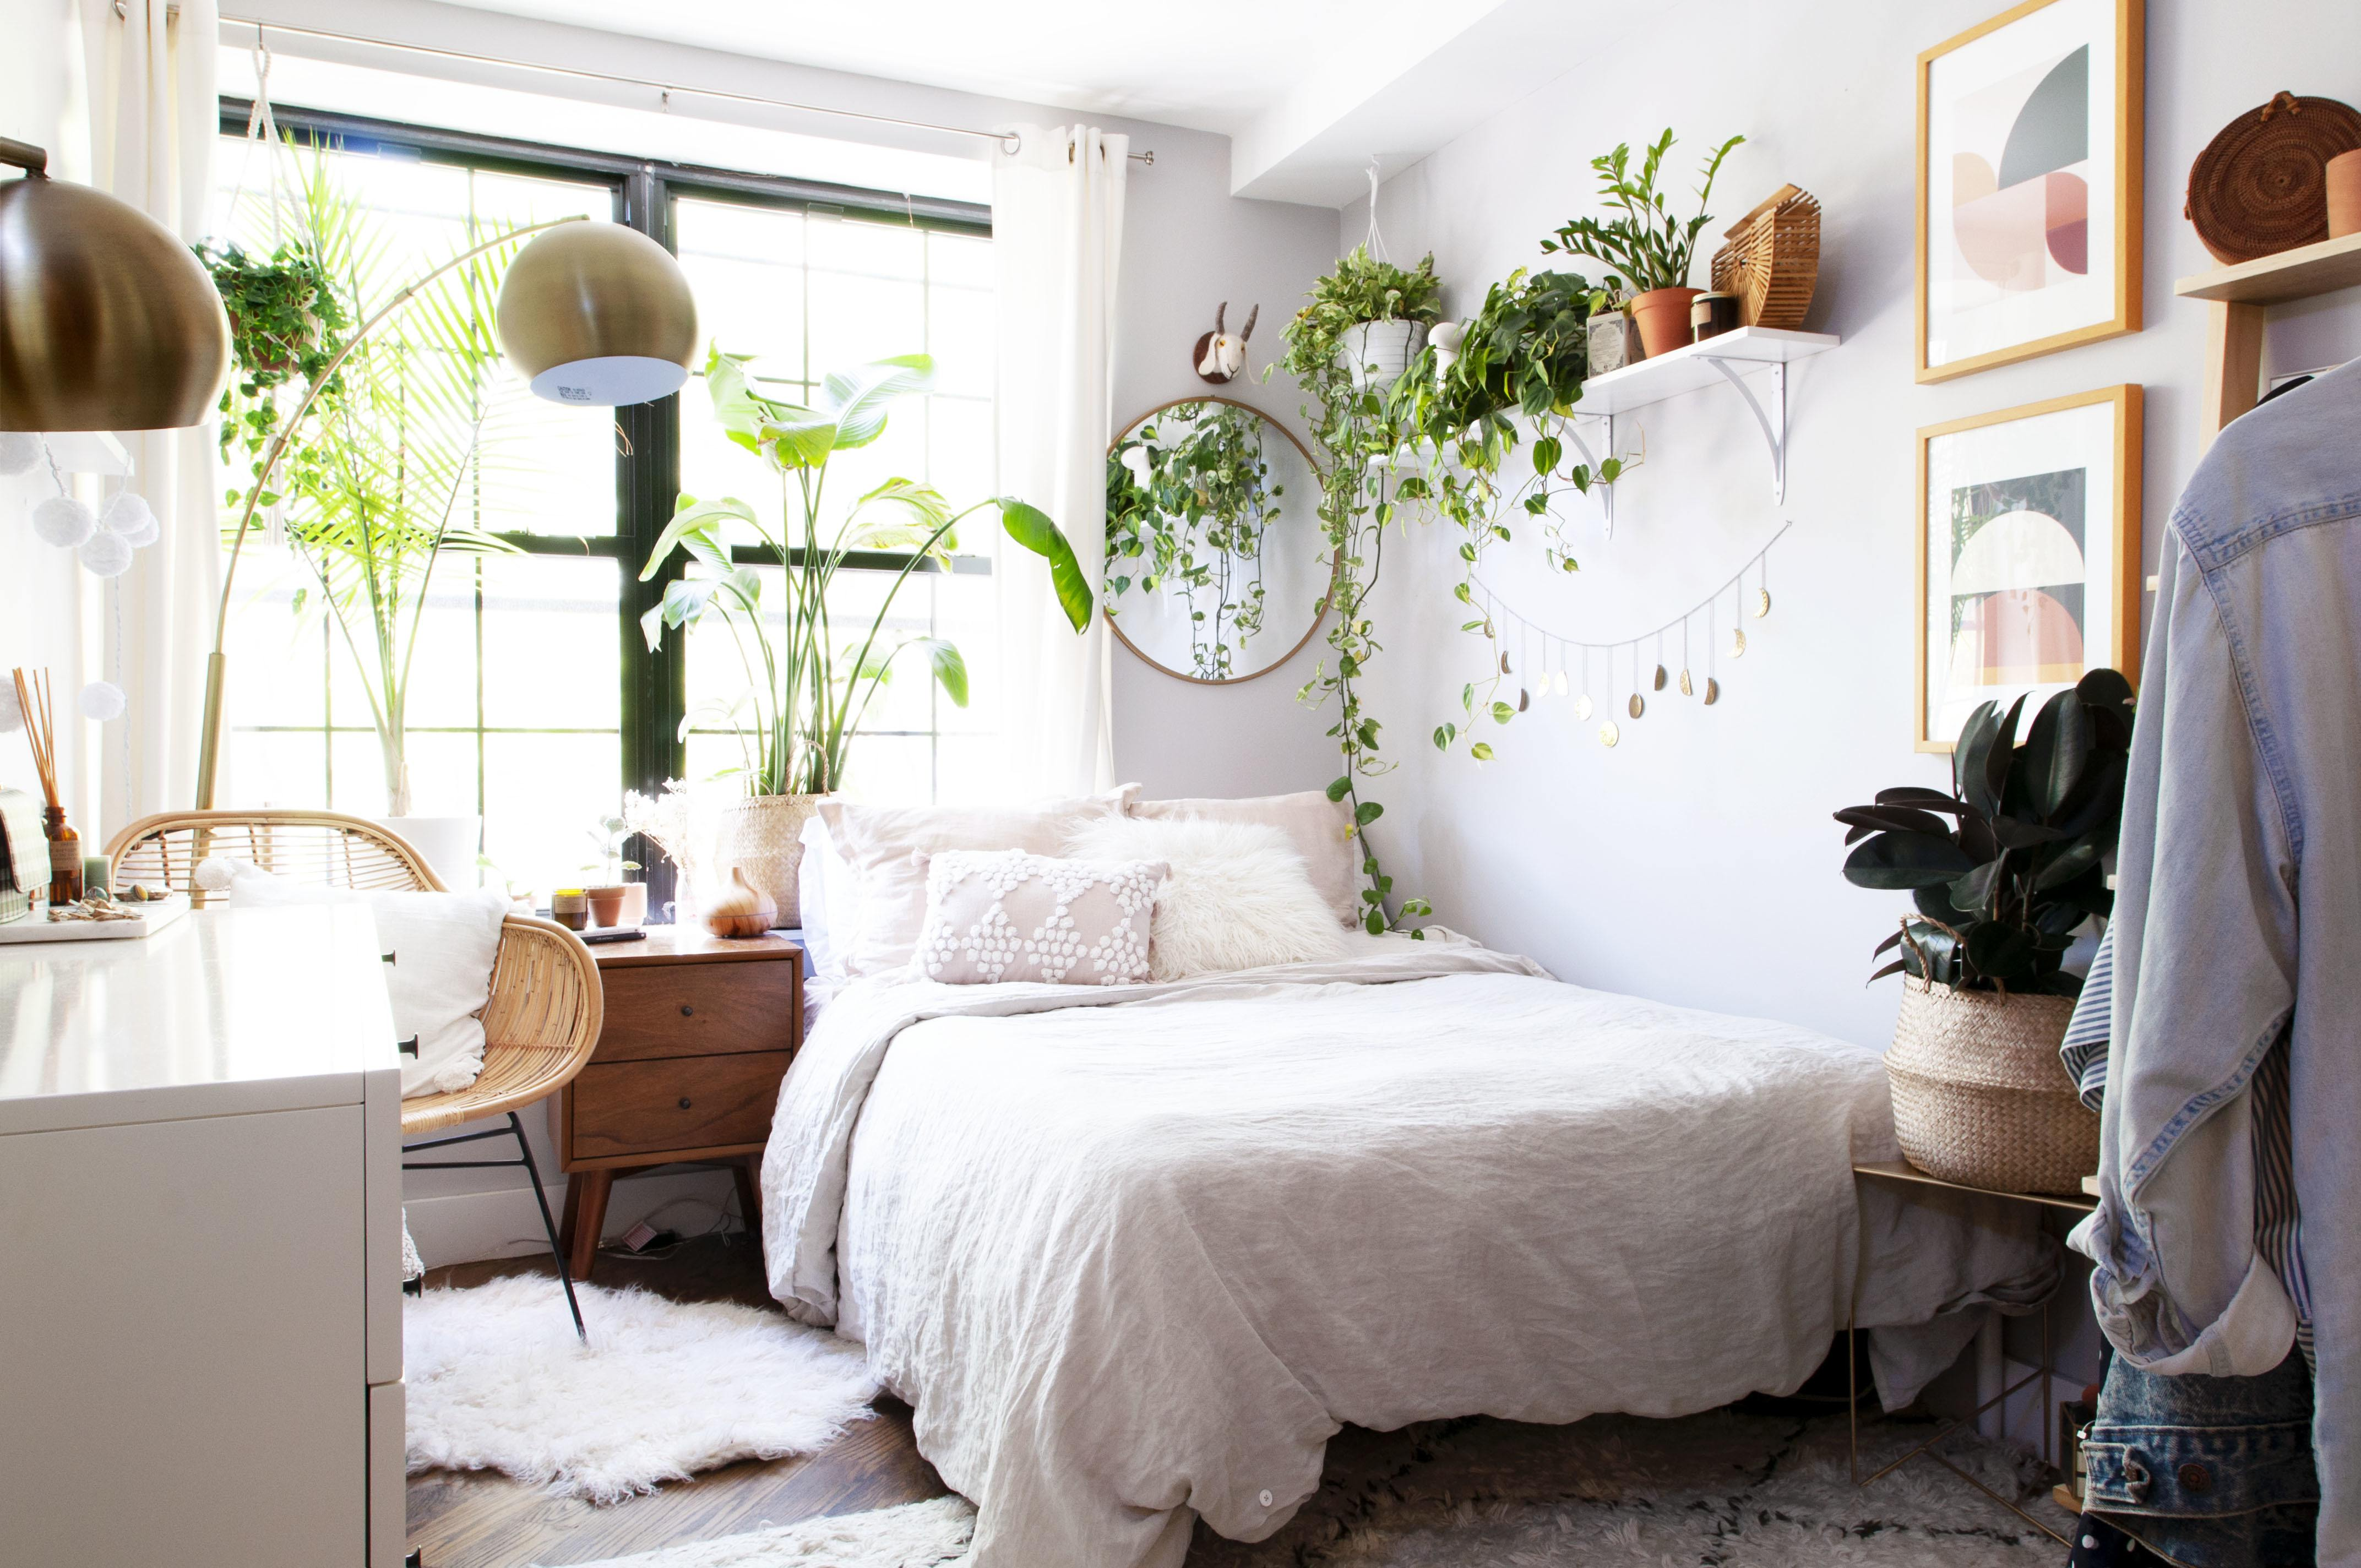 This Handy Guide to Bedroom Furniture Ideas and Decor Is Just Another Reason to Love Sleeping